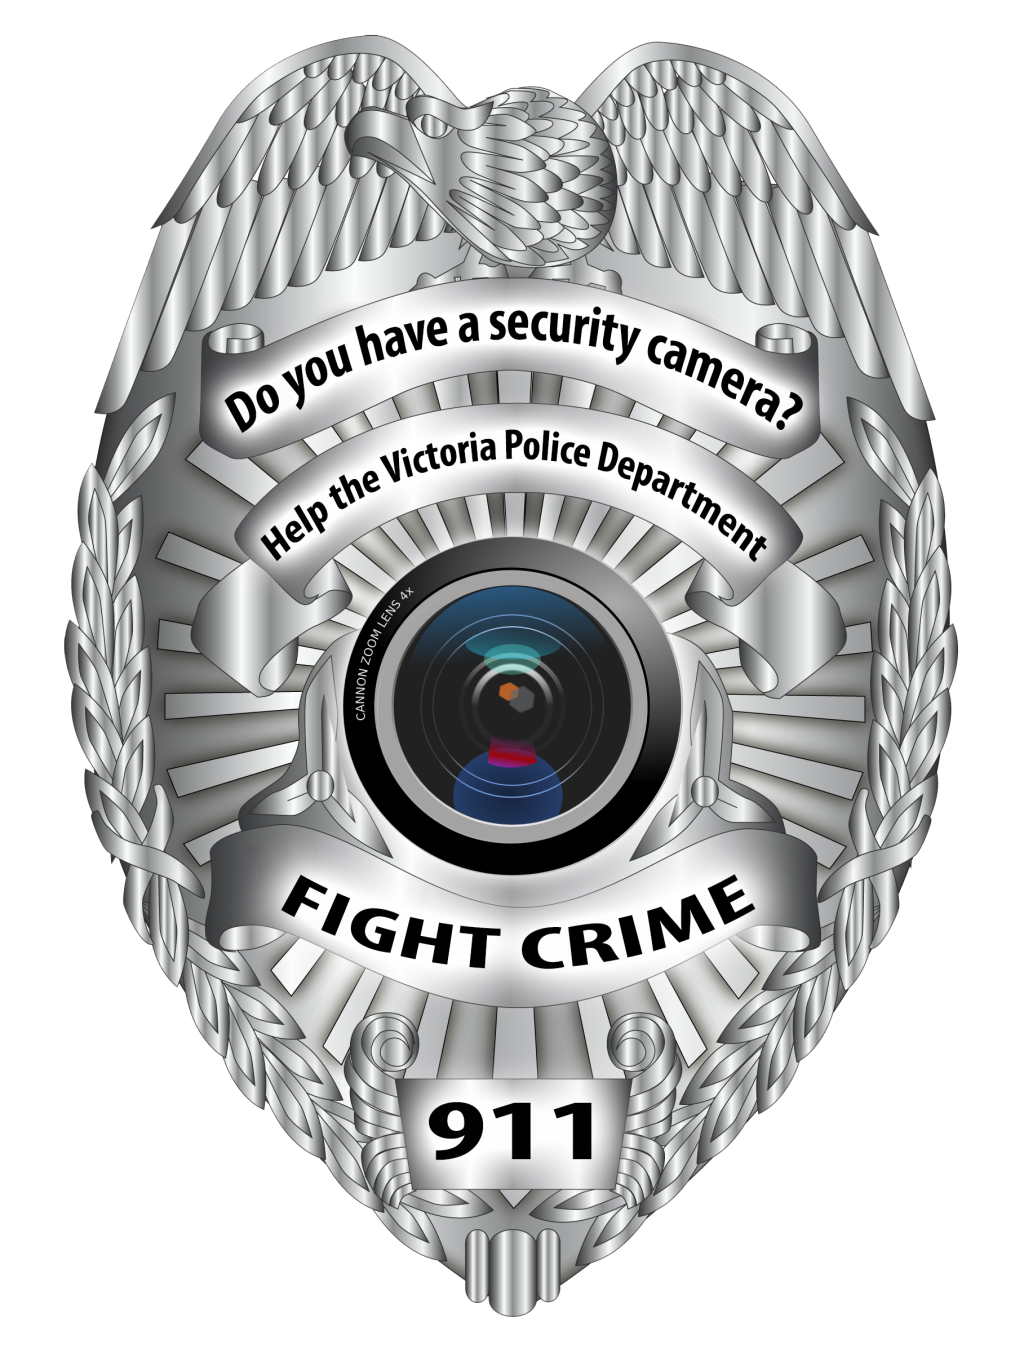 Do you have a security camera - Help the Victoria Police Deparment Fight Crime 911